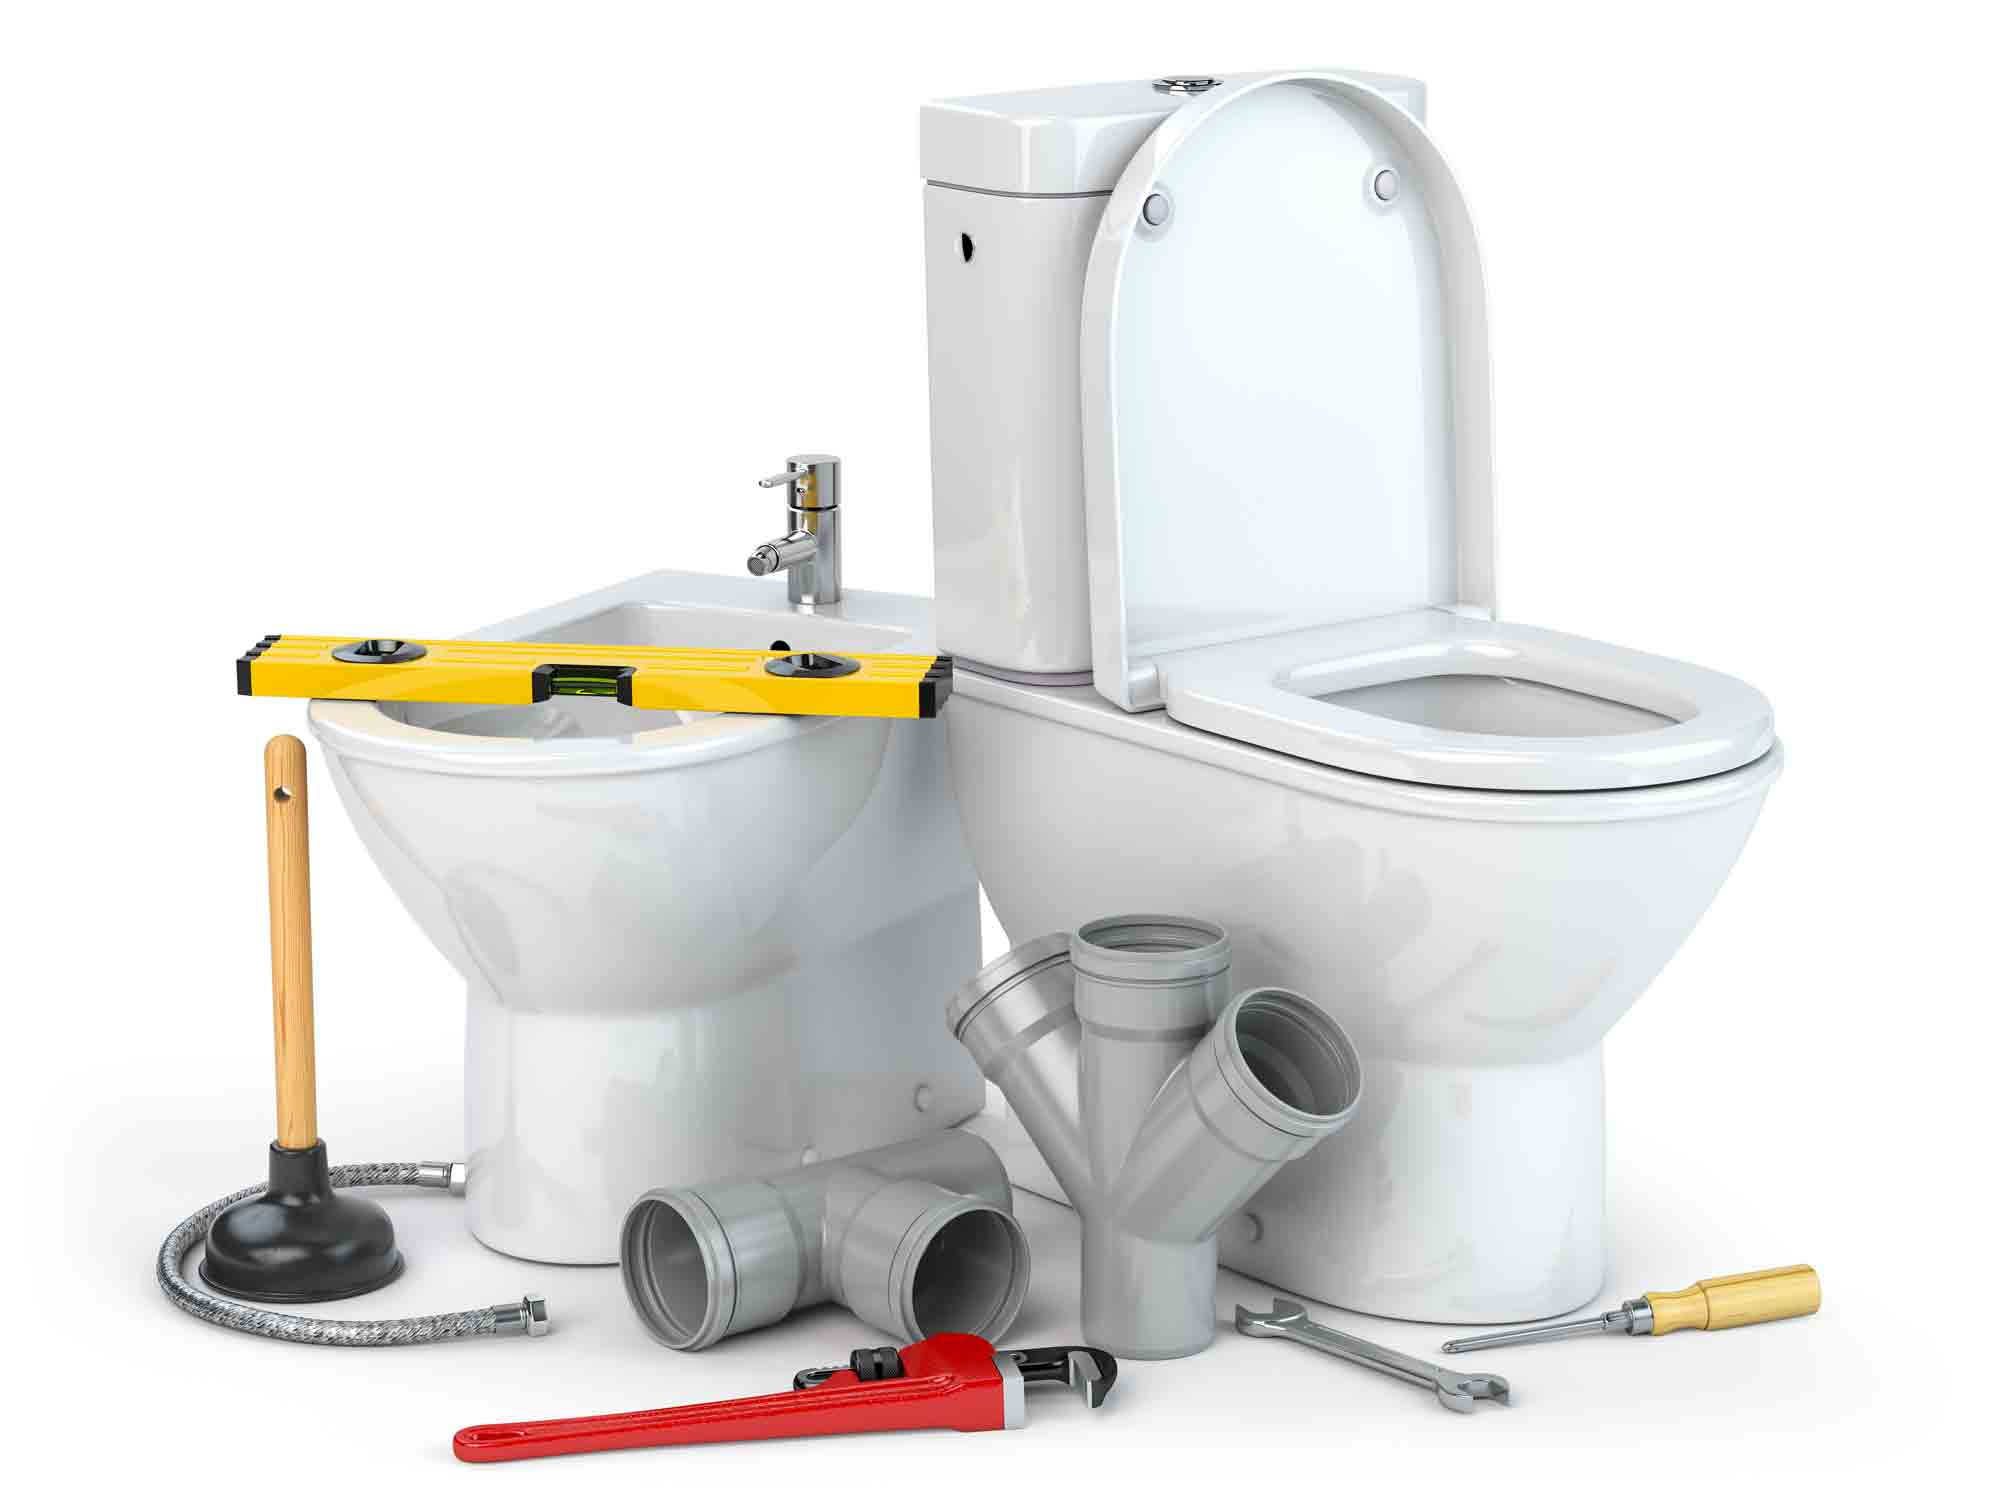 plumbing-repair-service-bowl-and-bidet-with-WUEF7DB.jpg